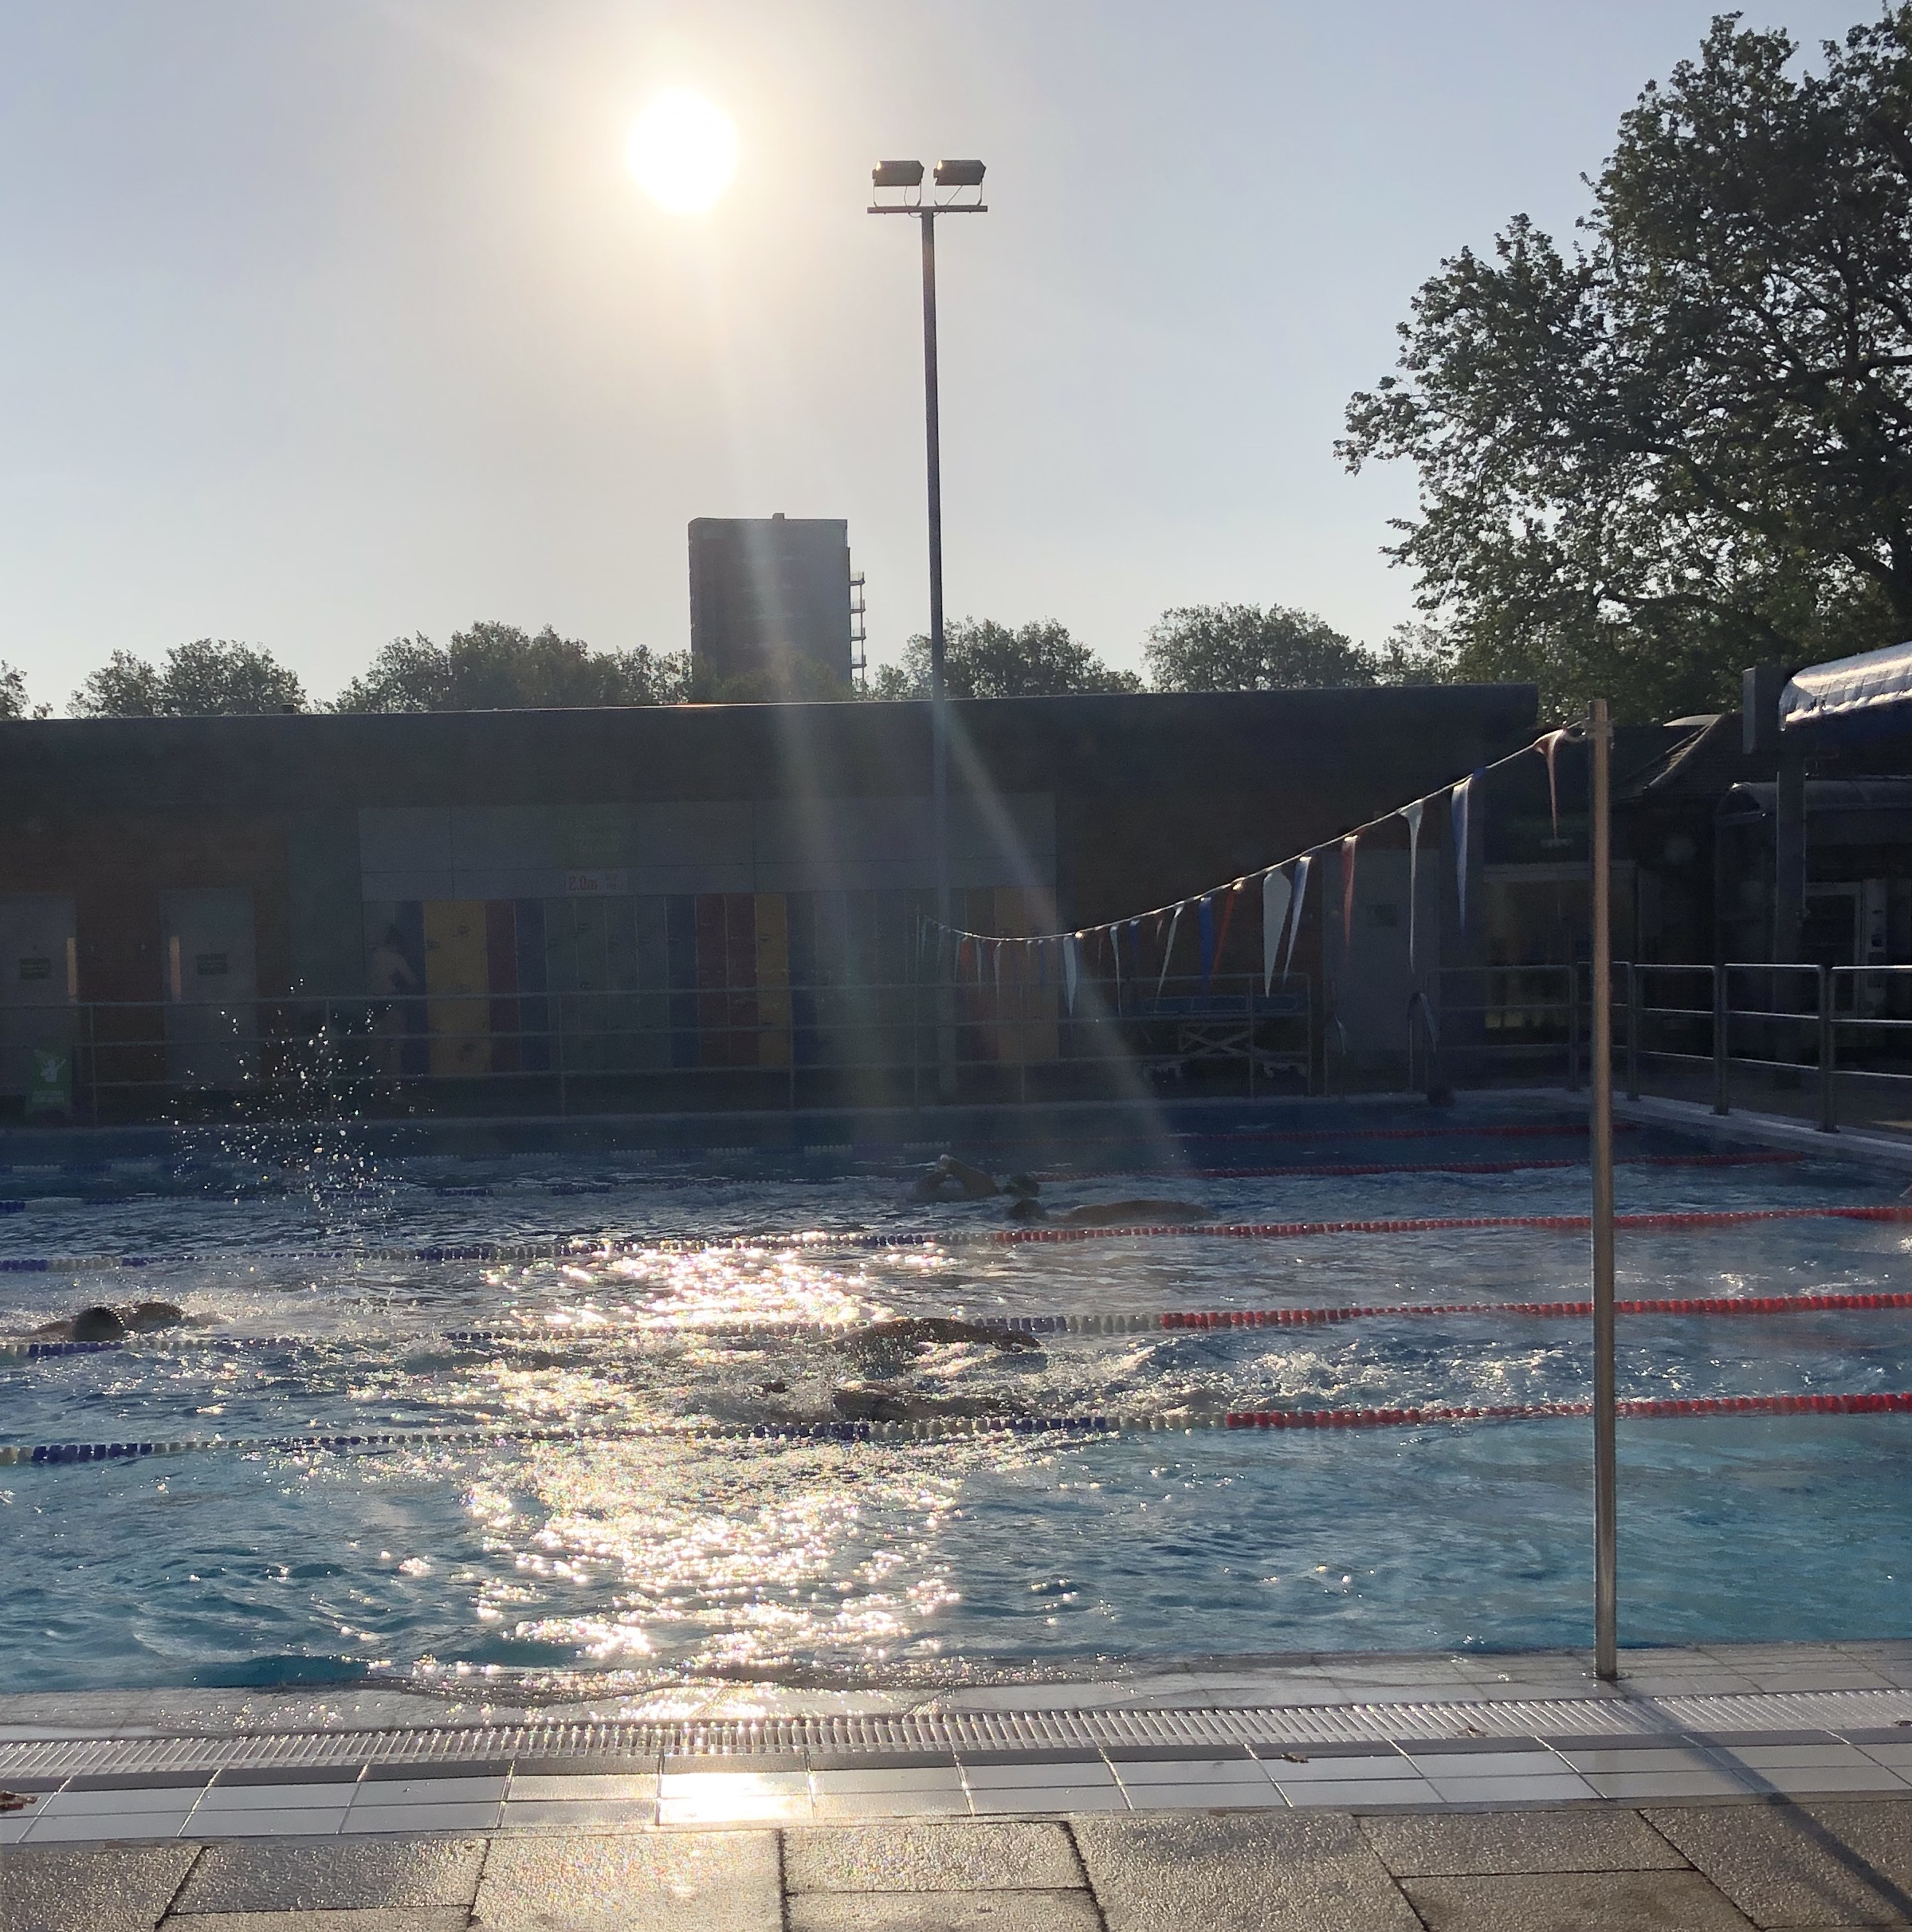 London Fields Lido in the early morning sunshine